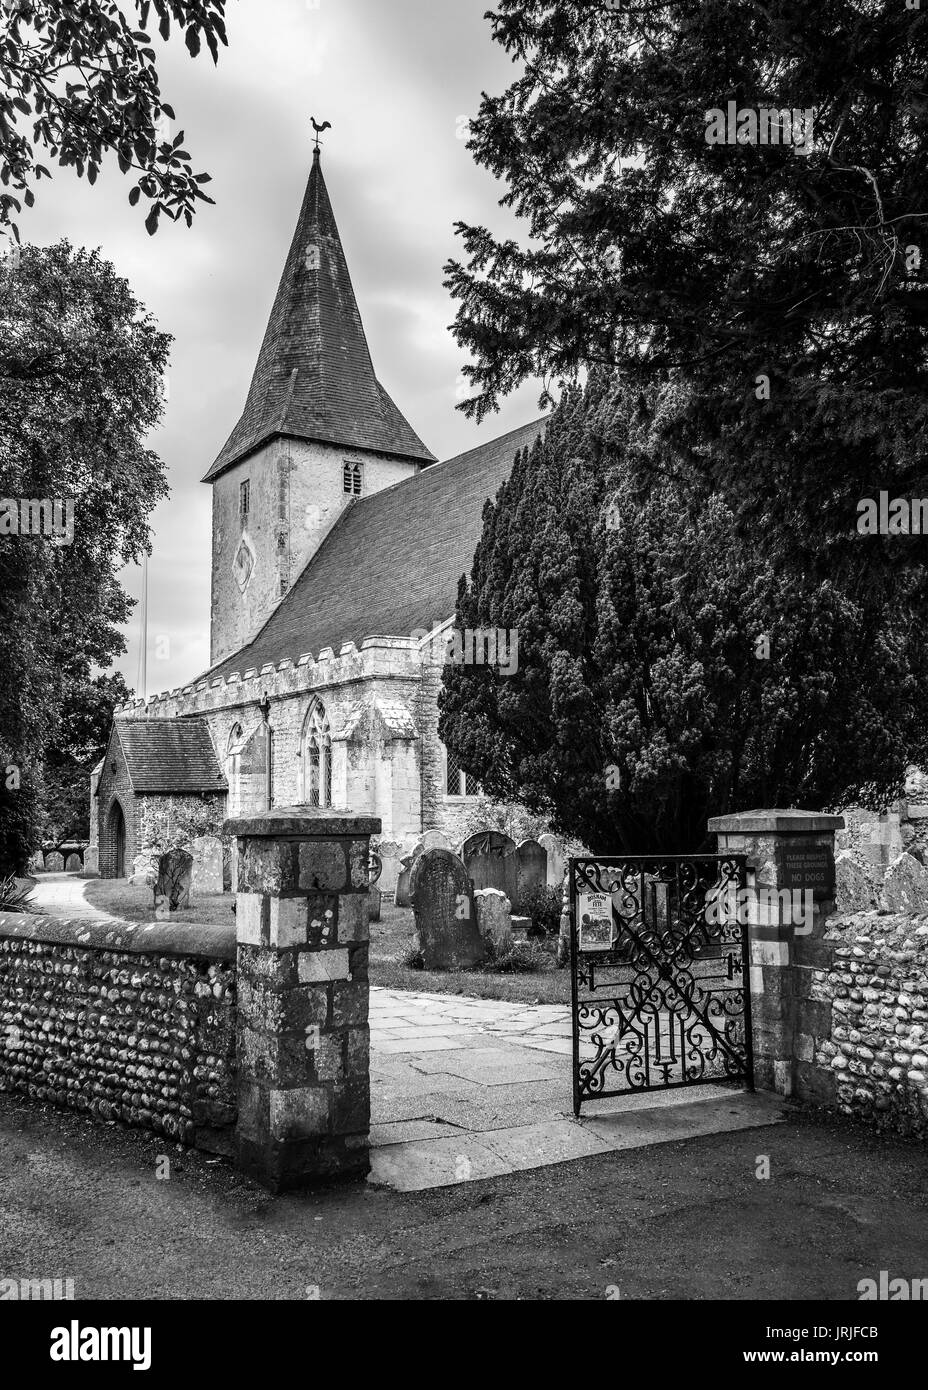 Black and white image of Holy Trinity Church, Bosham, West Sussex, England - Stock Image